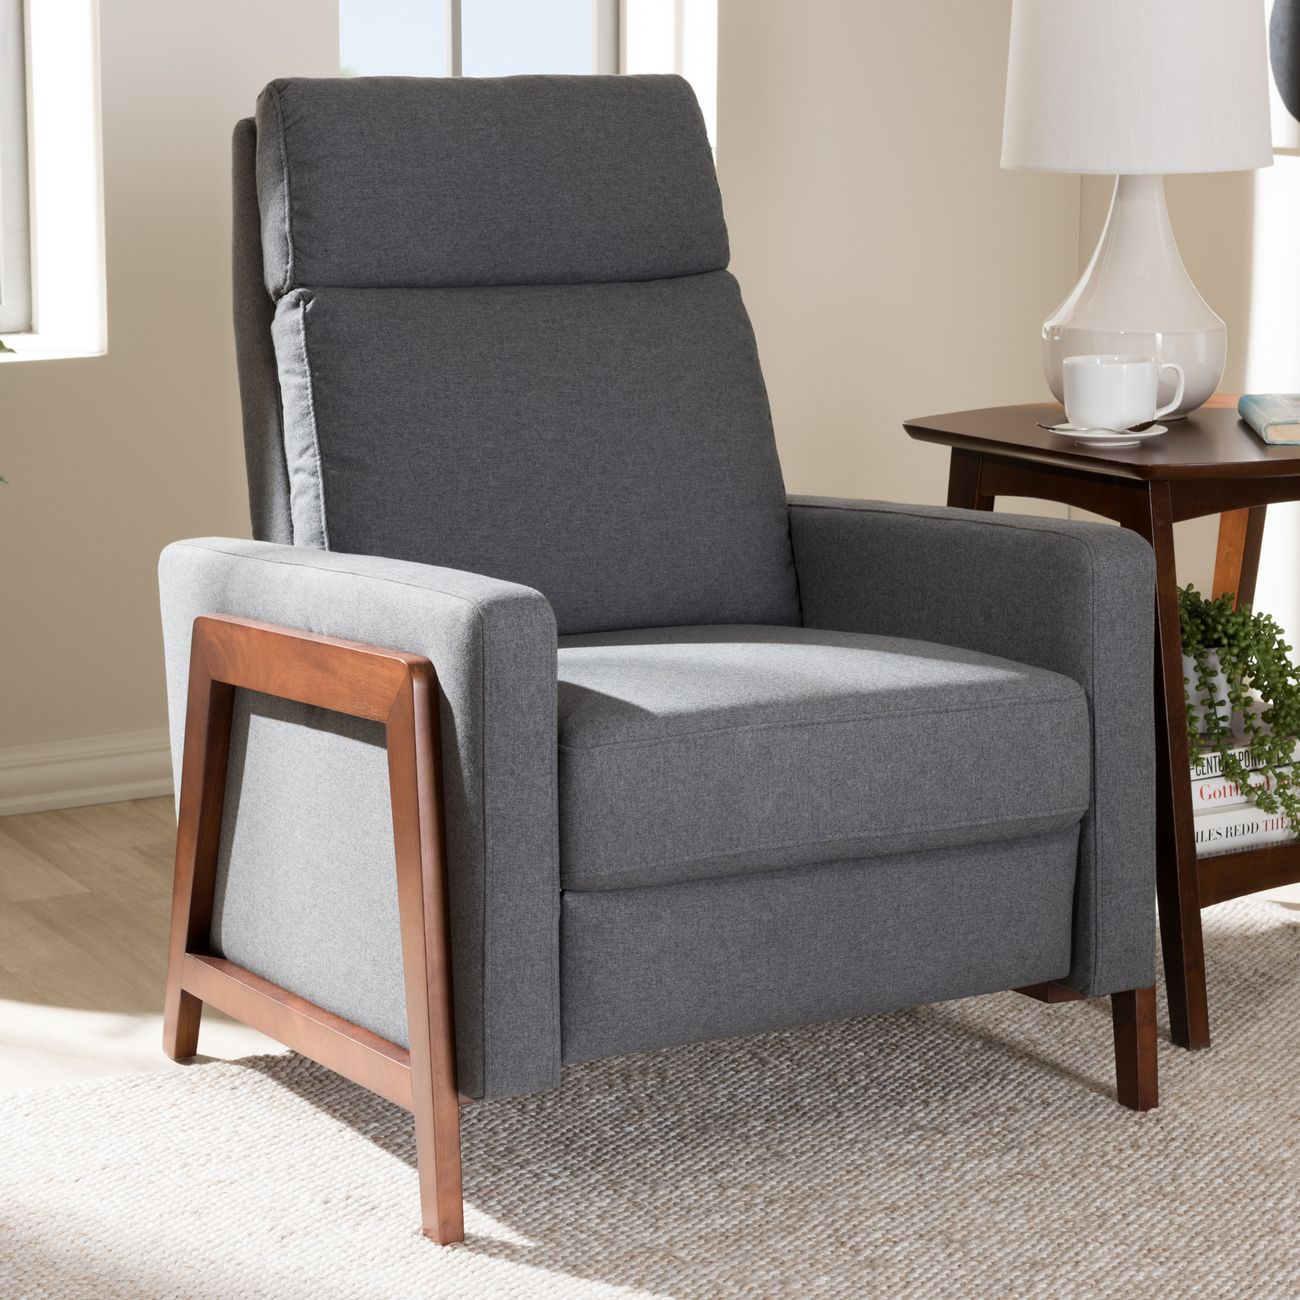 Picture of: Baxton Studio Halstein Mid Century Modern Grey Fabric Upholstered Lounge Chair 1706 Gray